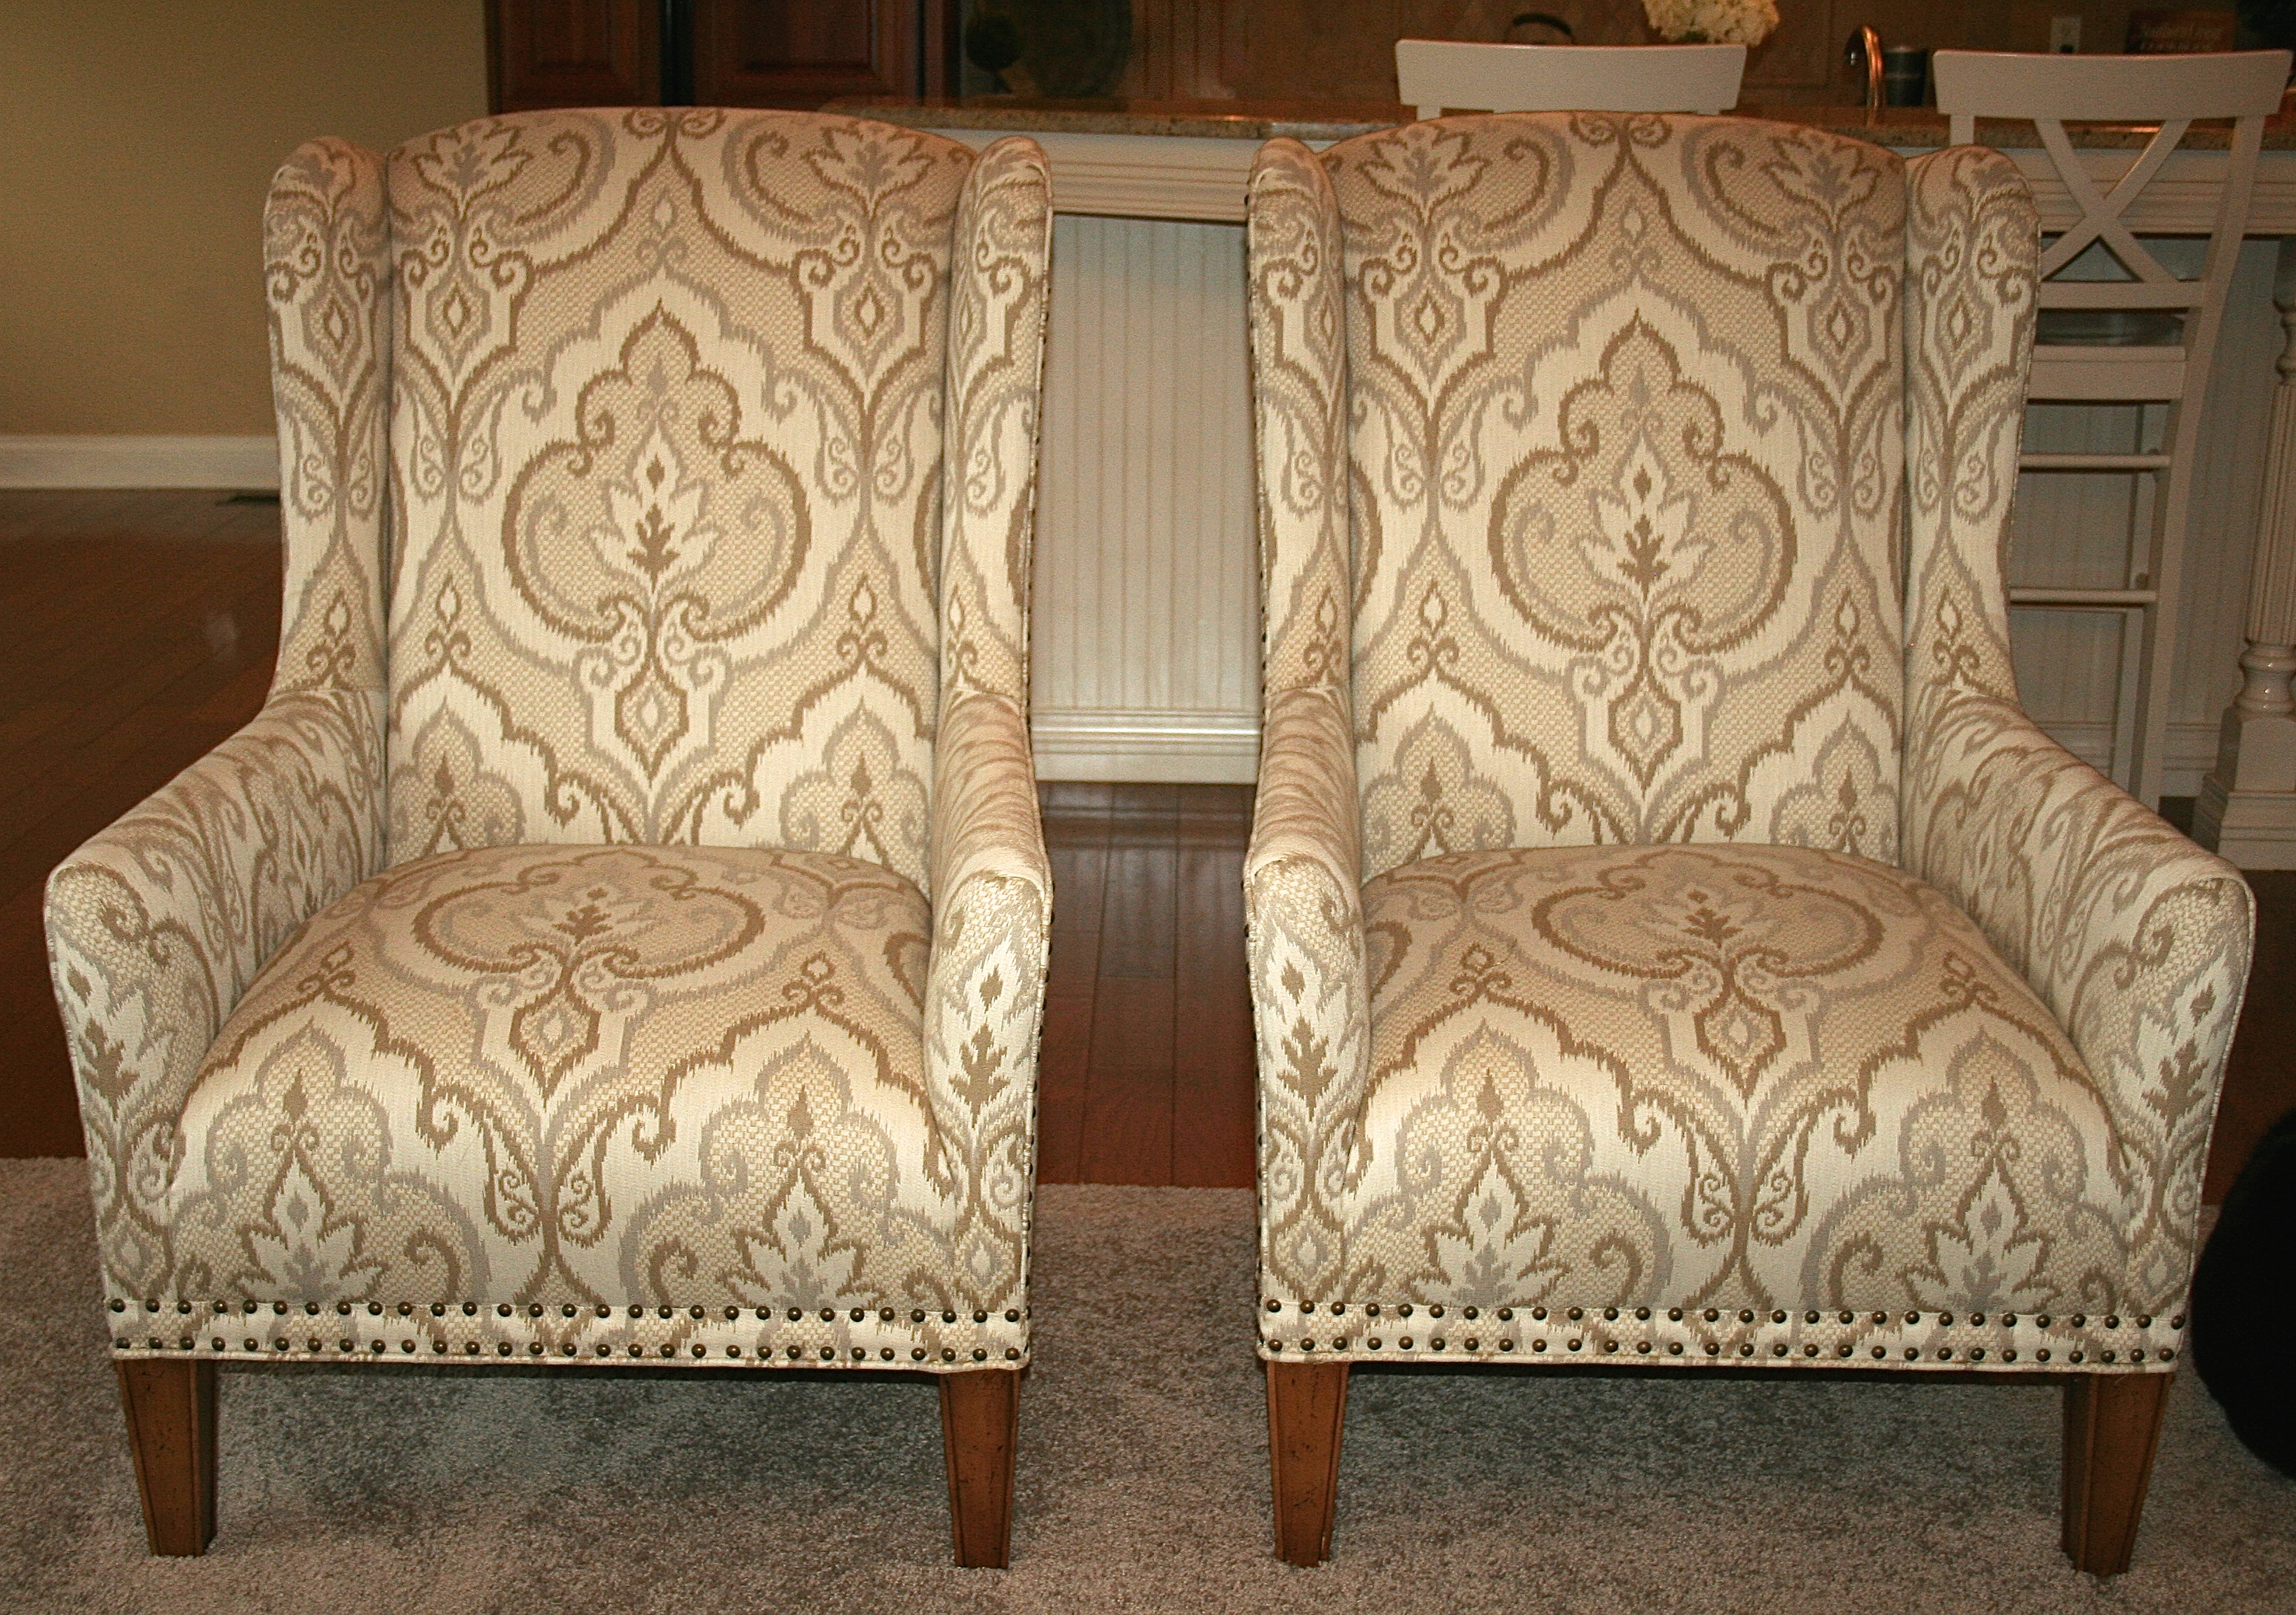 Custom Fabric Accent Chairs.Furnishings Upholstery The Gold Finch